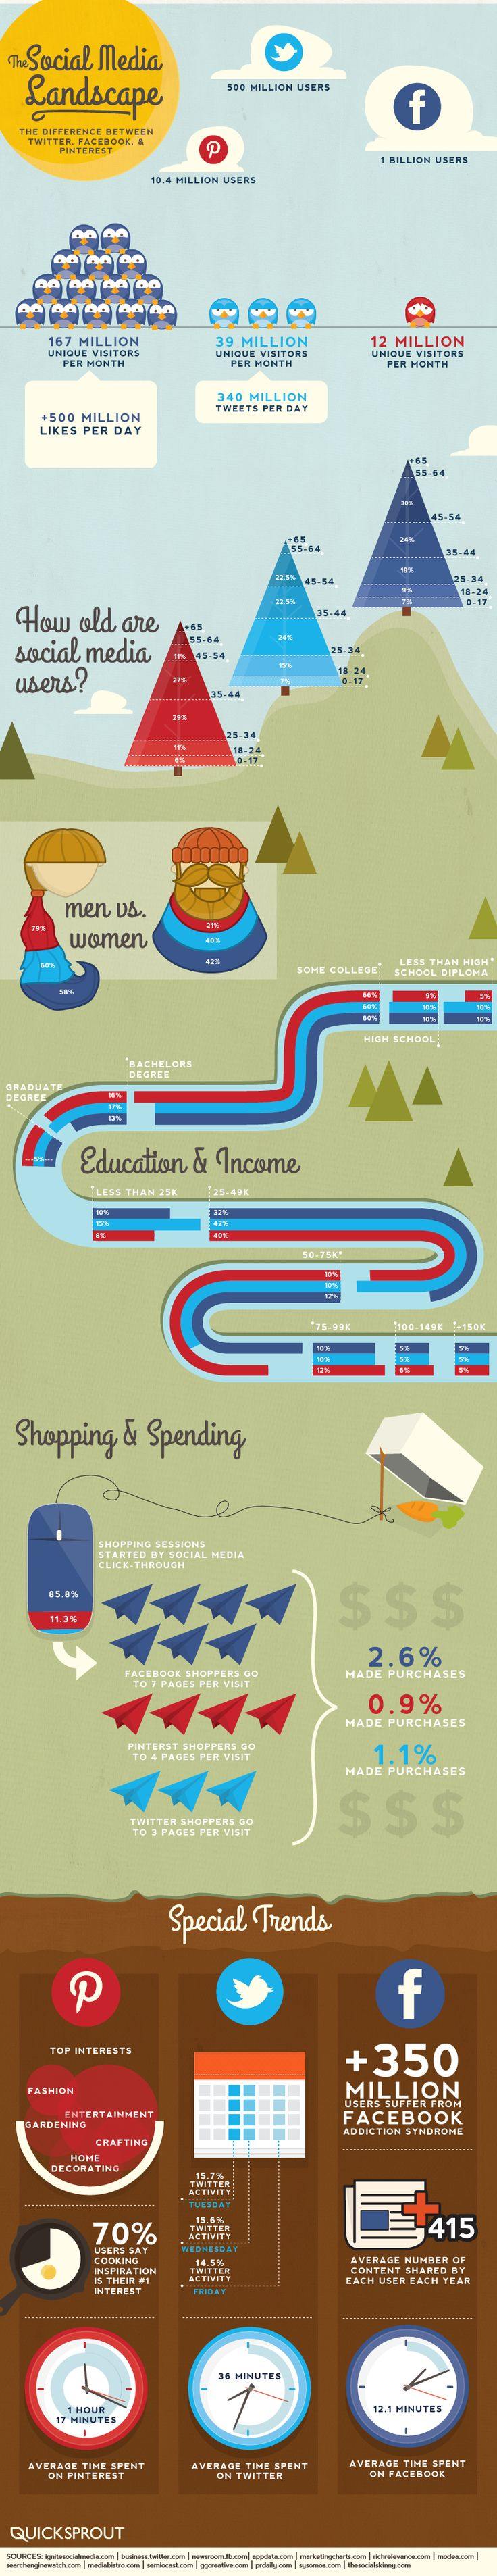 How You Should Spend Your Marketing Budget: Facebook vs Twitter vs Pinterest